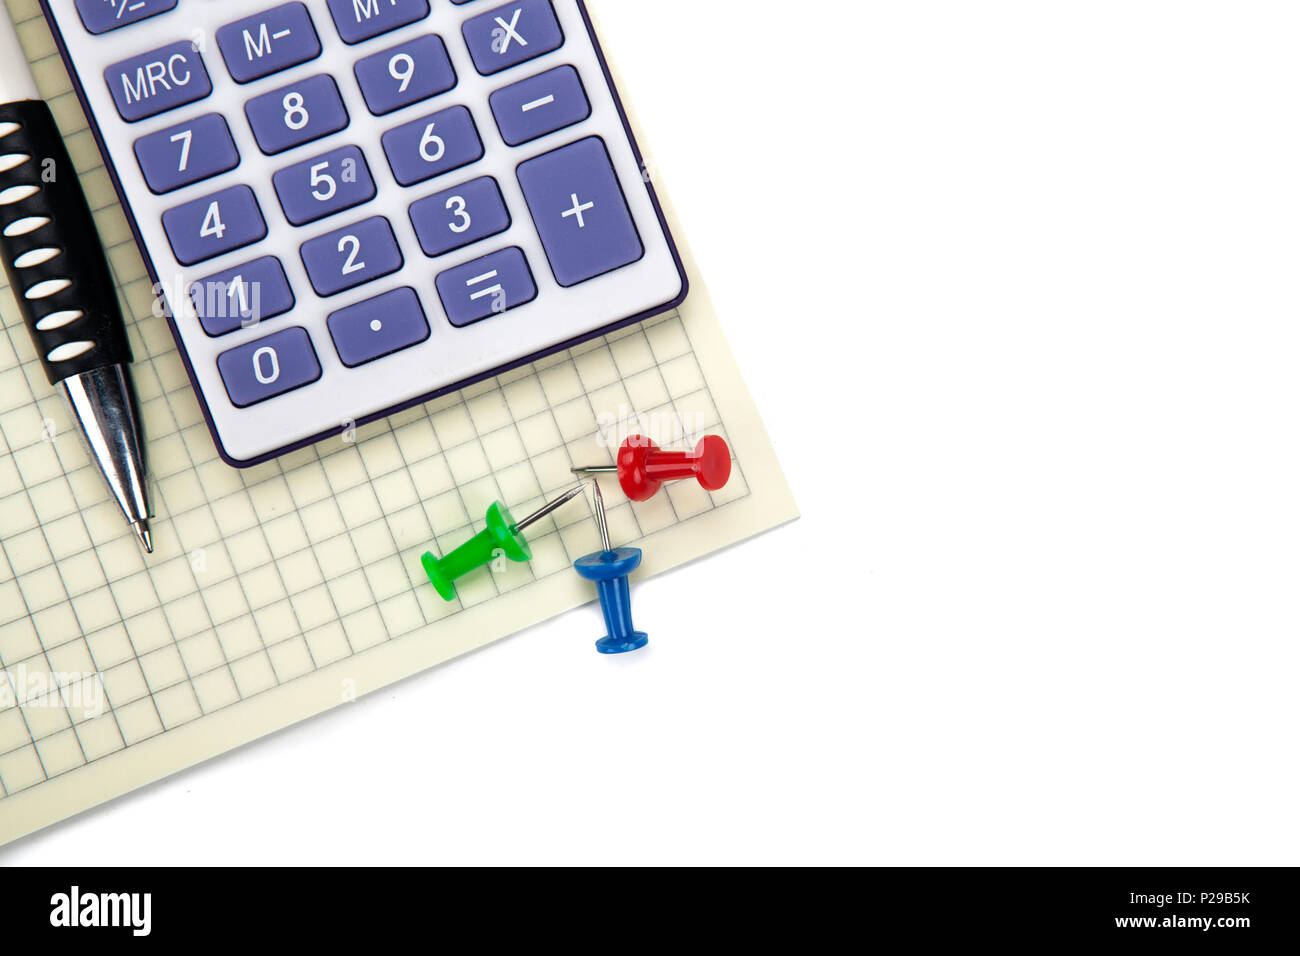 One big calculator and stationery on a white table closeup Stock Photo